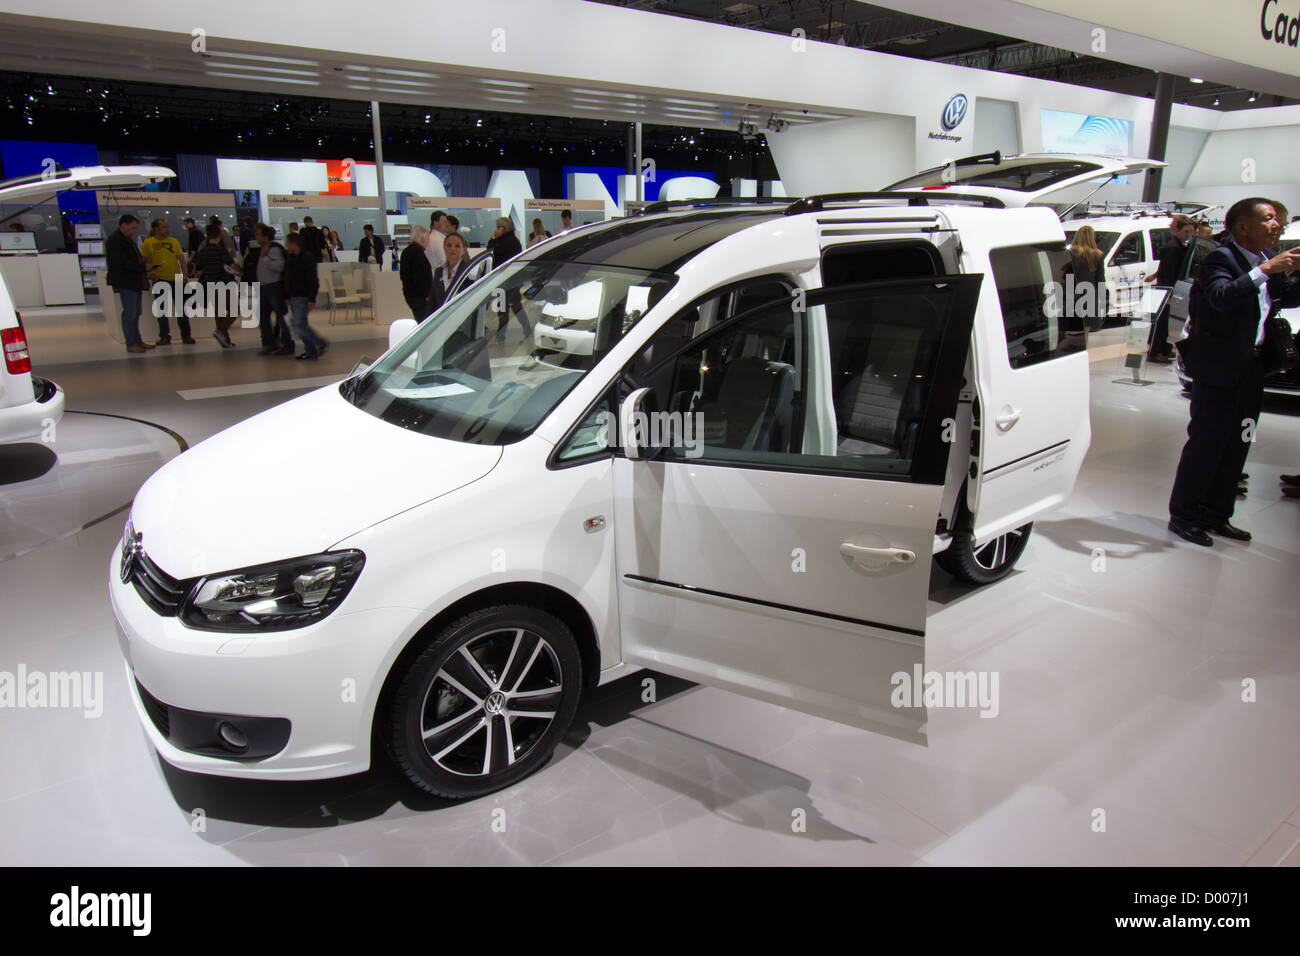 New Volkswagen Caddy at the International Motor Show for Commercial Vehicles 2012 - Stock Image